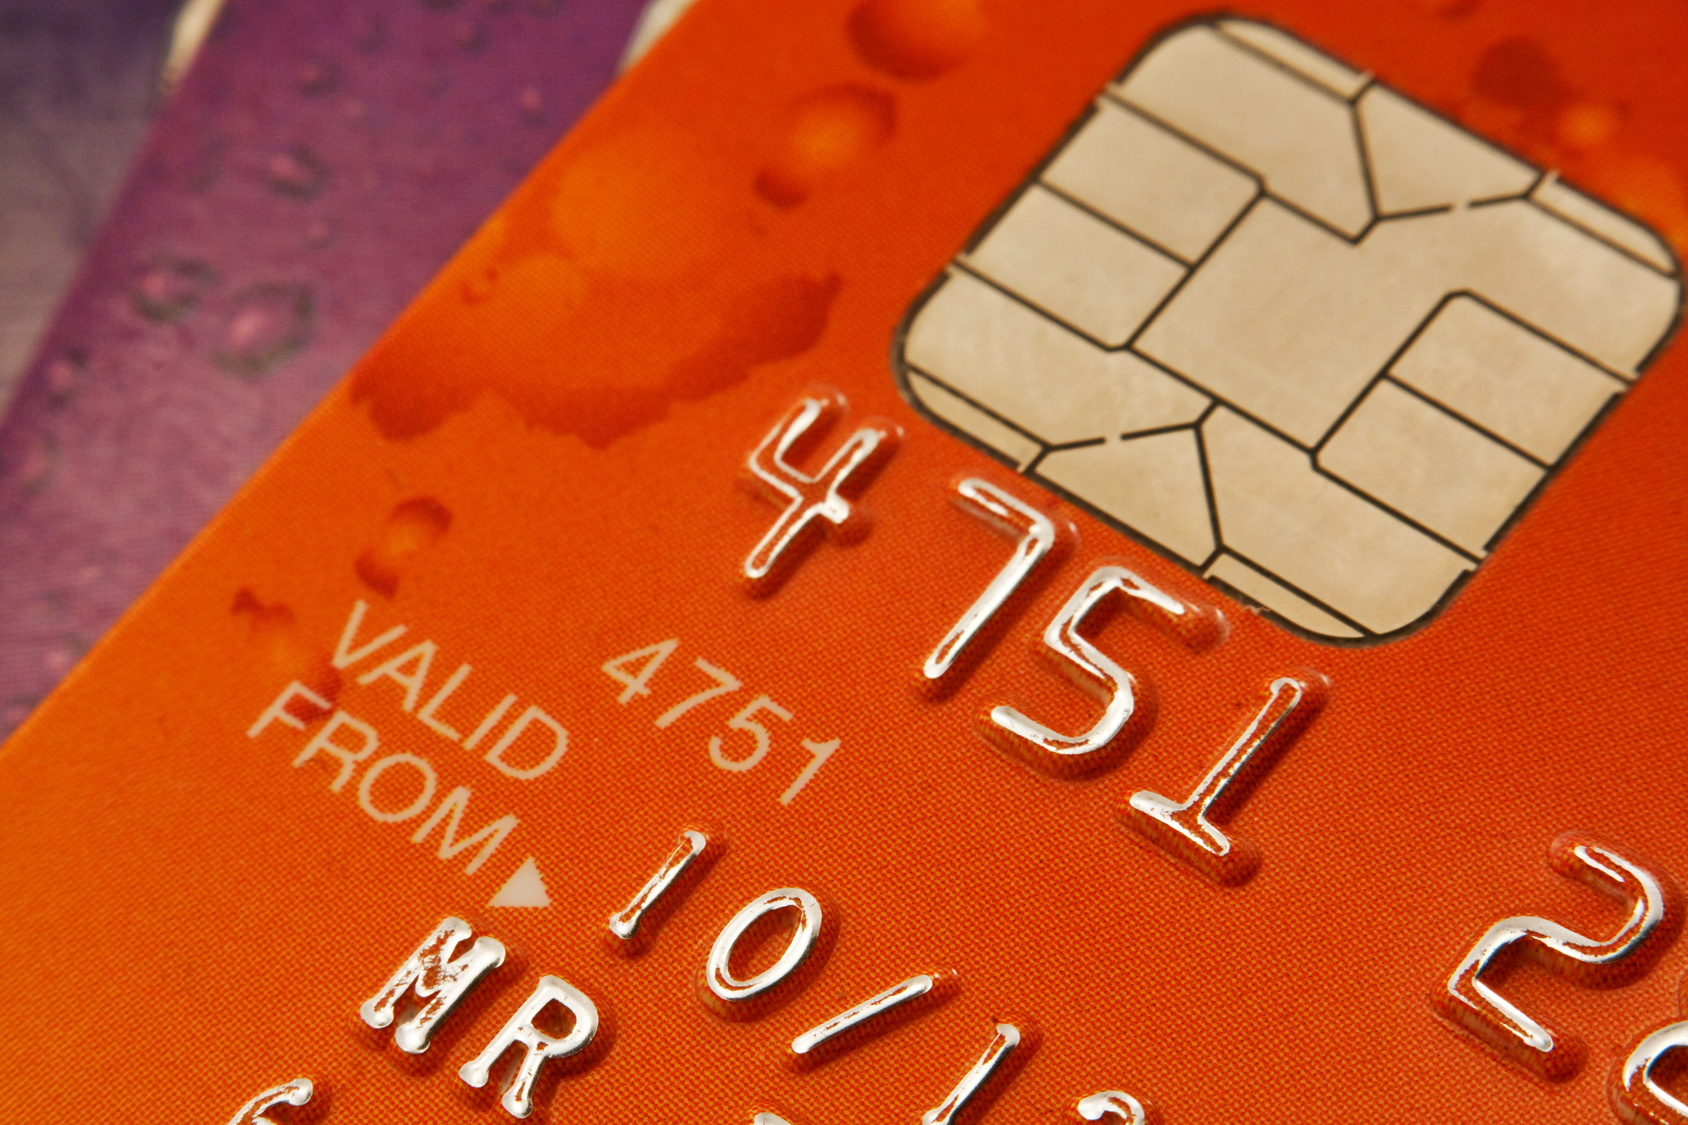 Plastic Bank cards with focus on the Chip and pin security device